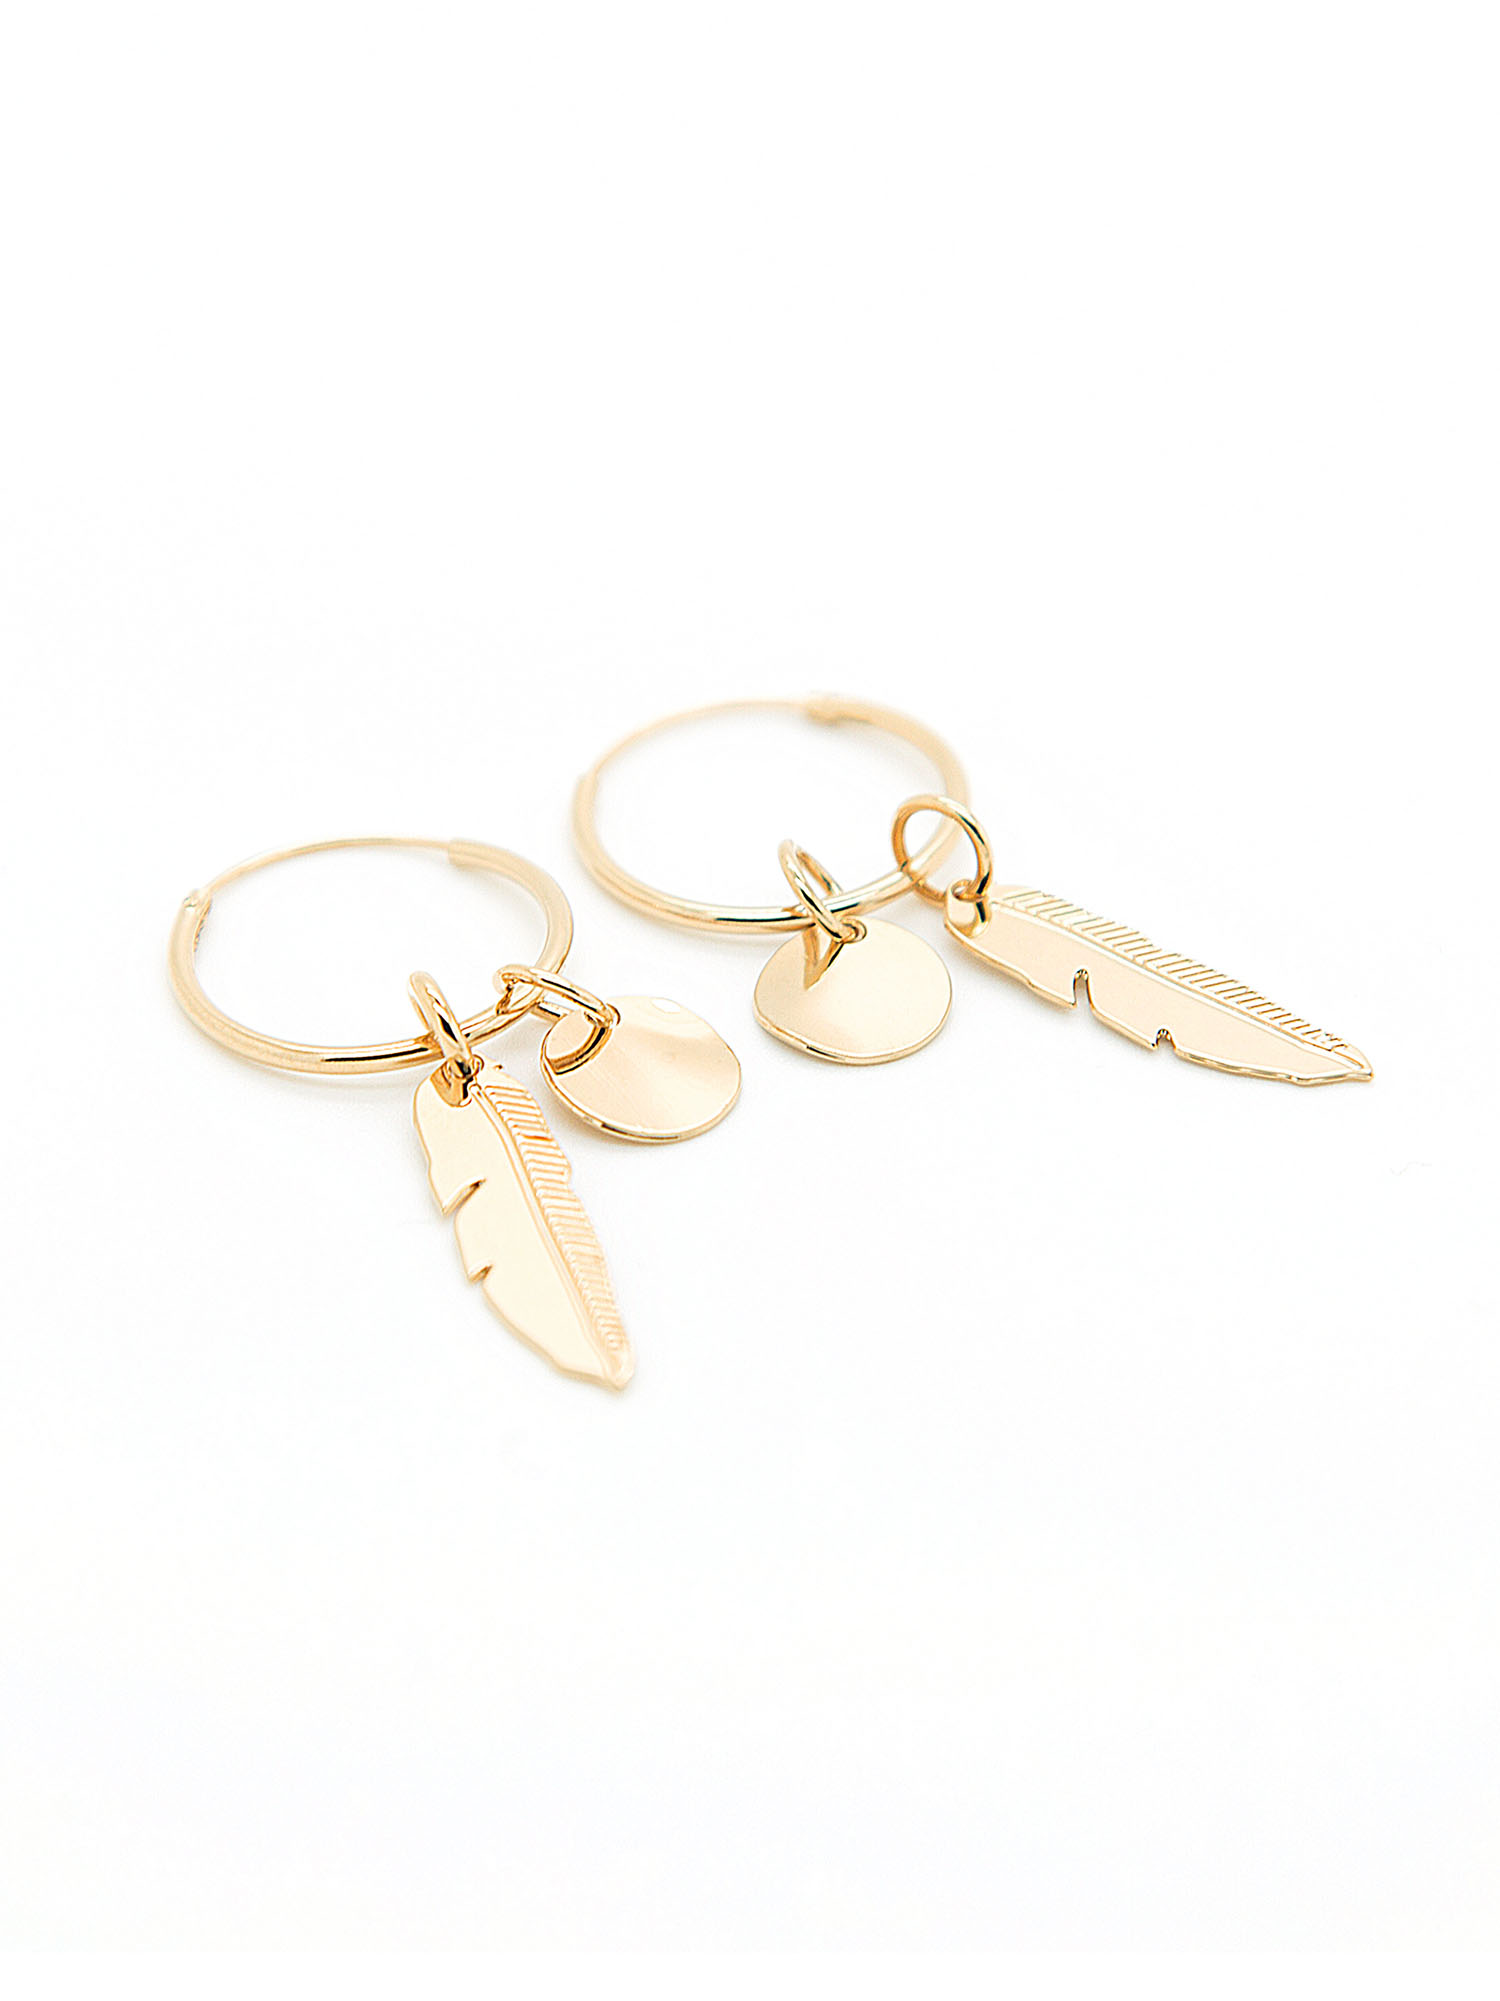 serendipity earring in hole products baguette cartilage second piercing stud cz seoul earrings